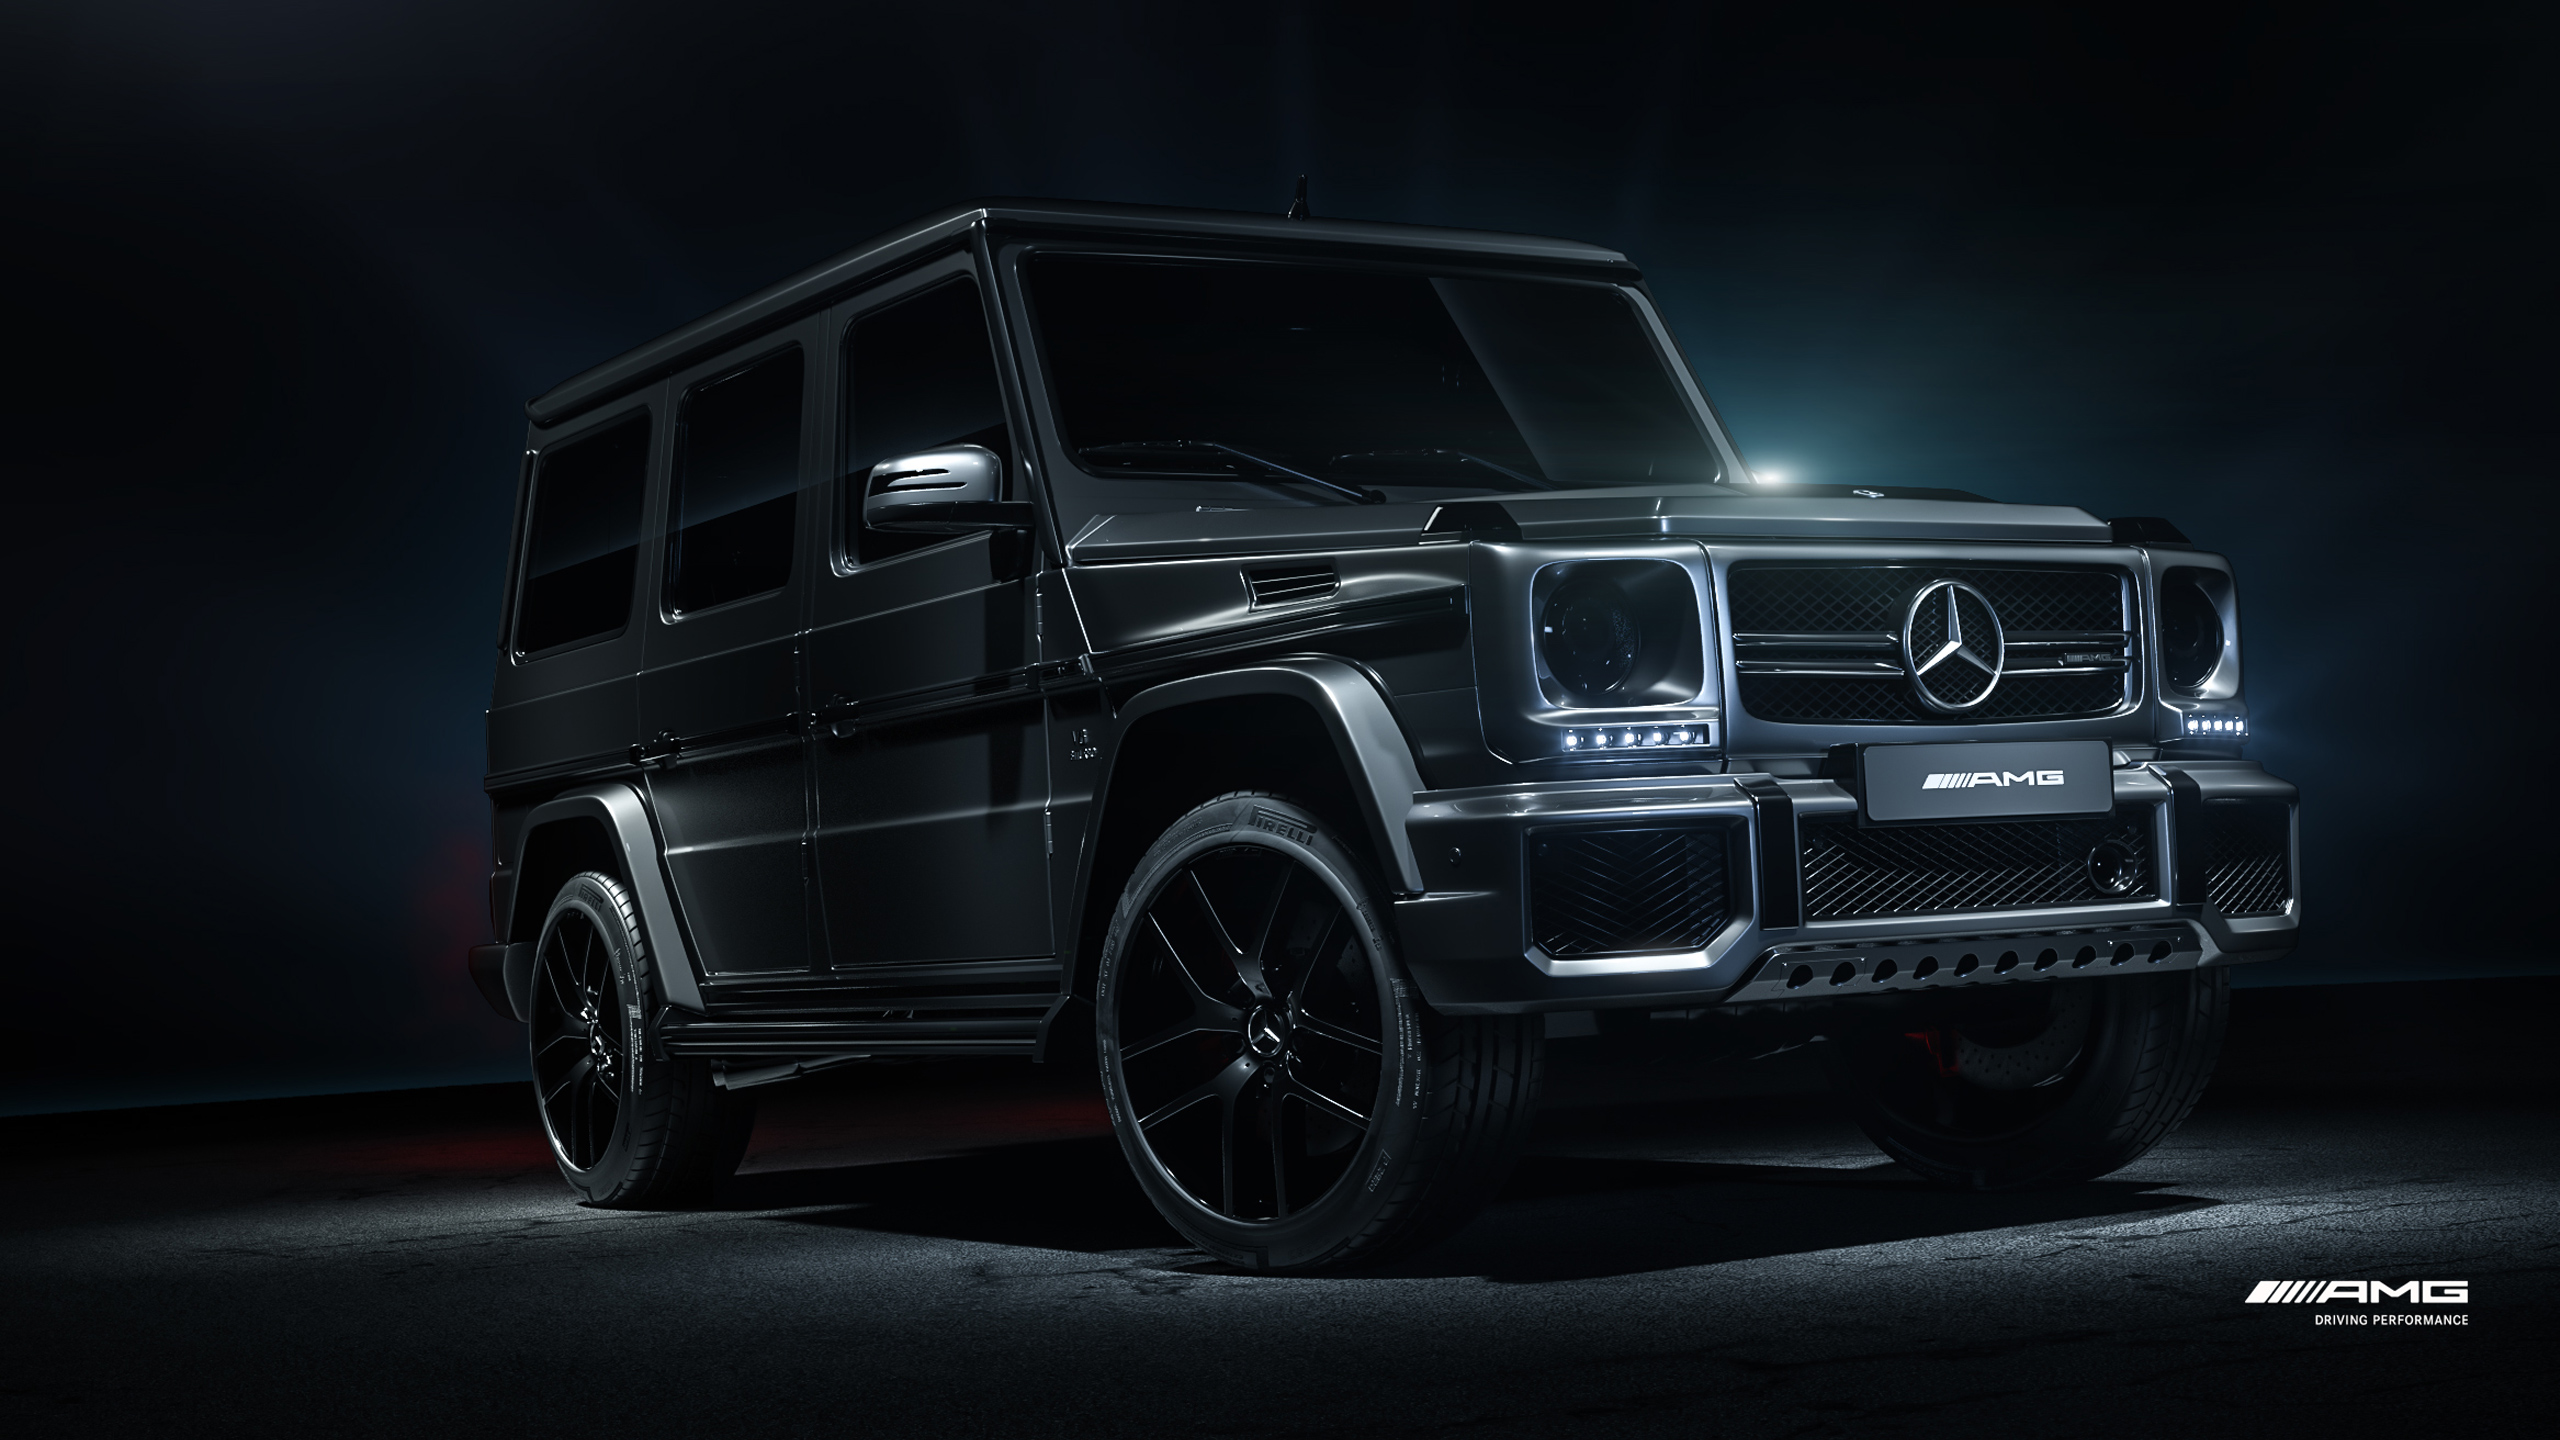 mercedes benz g 63 amg wallpaper hd car wallpapers id 8448. Black Bedroom Furniture Sets. Home Design Ideas